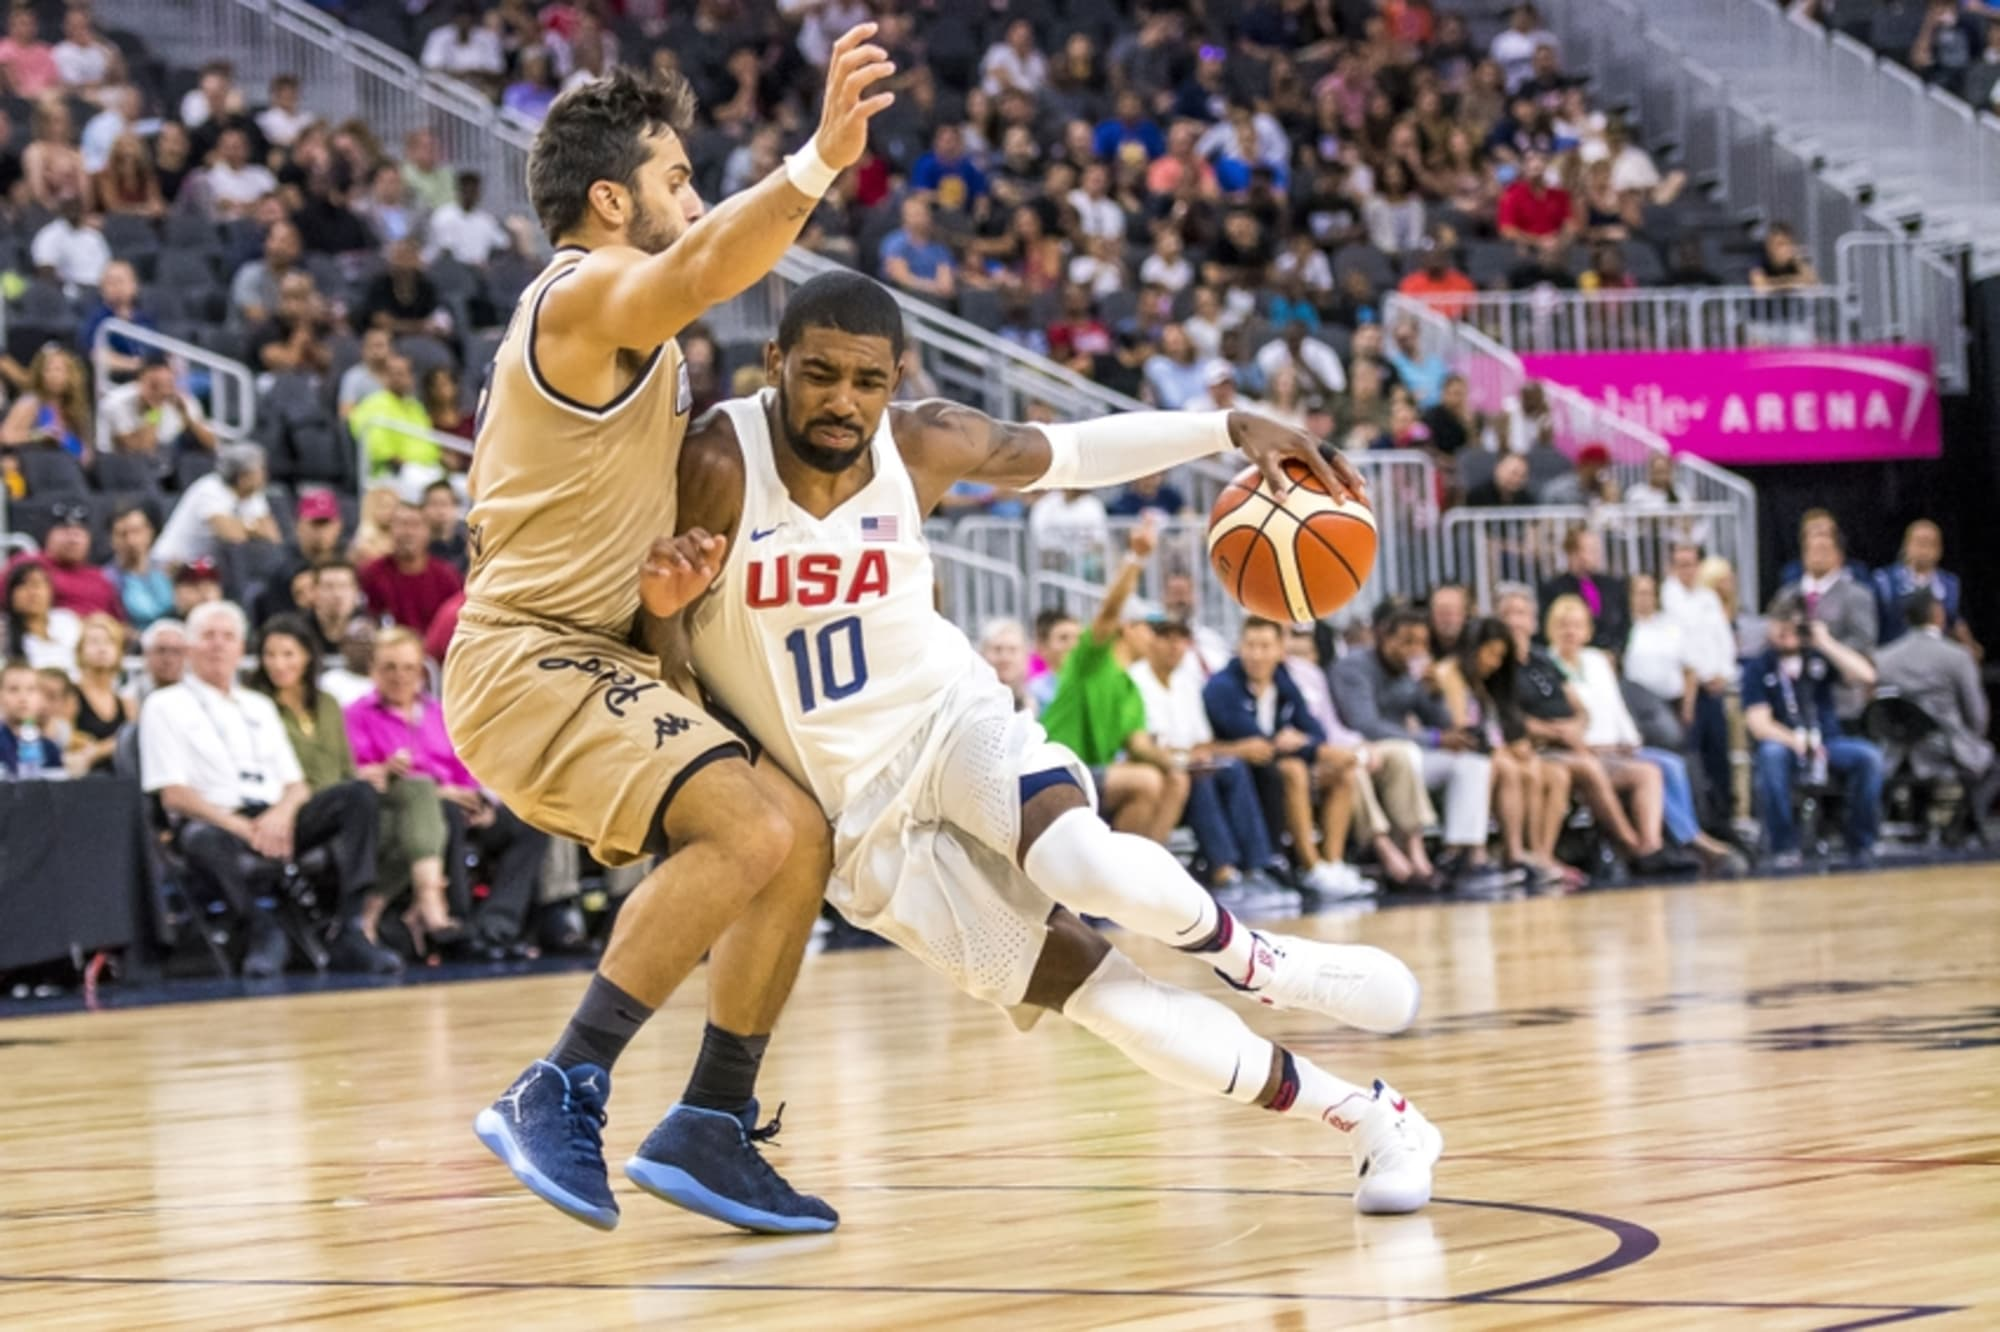 Kyrie Irving's sick crossover for USA vs. China (video)